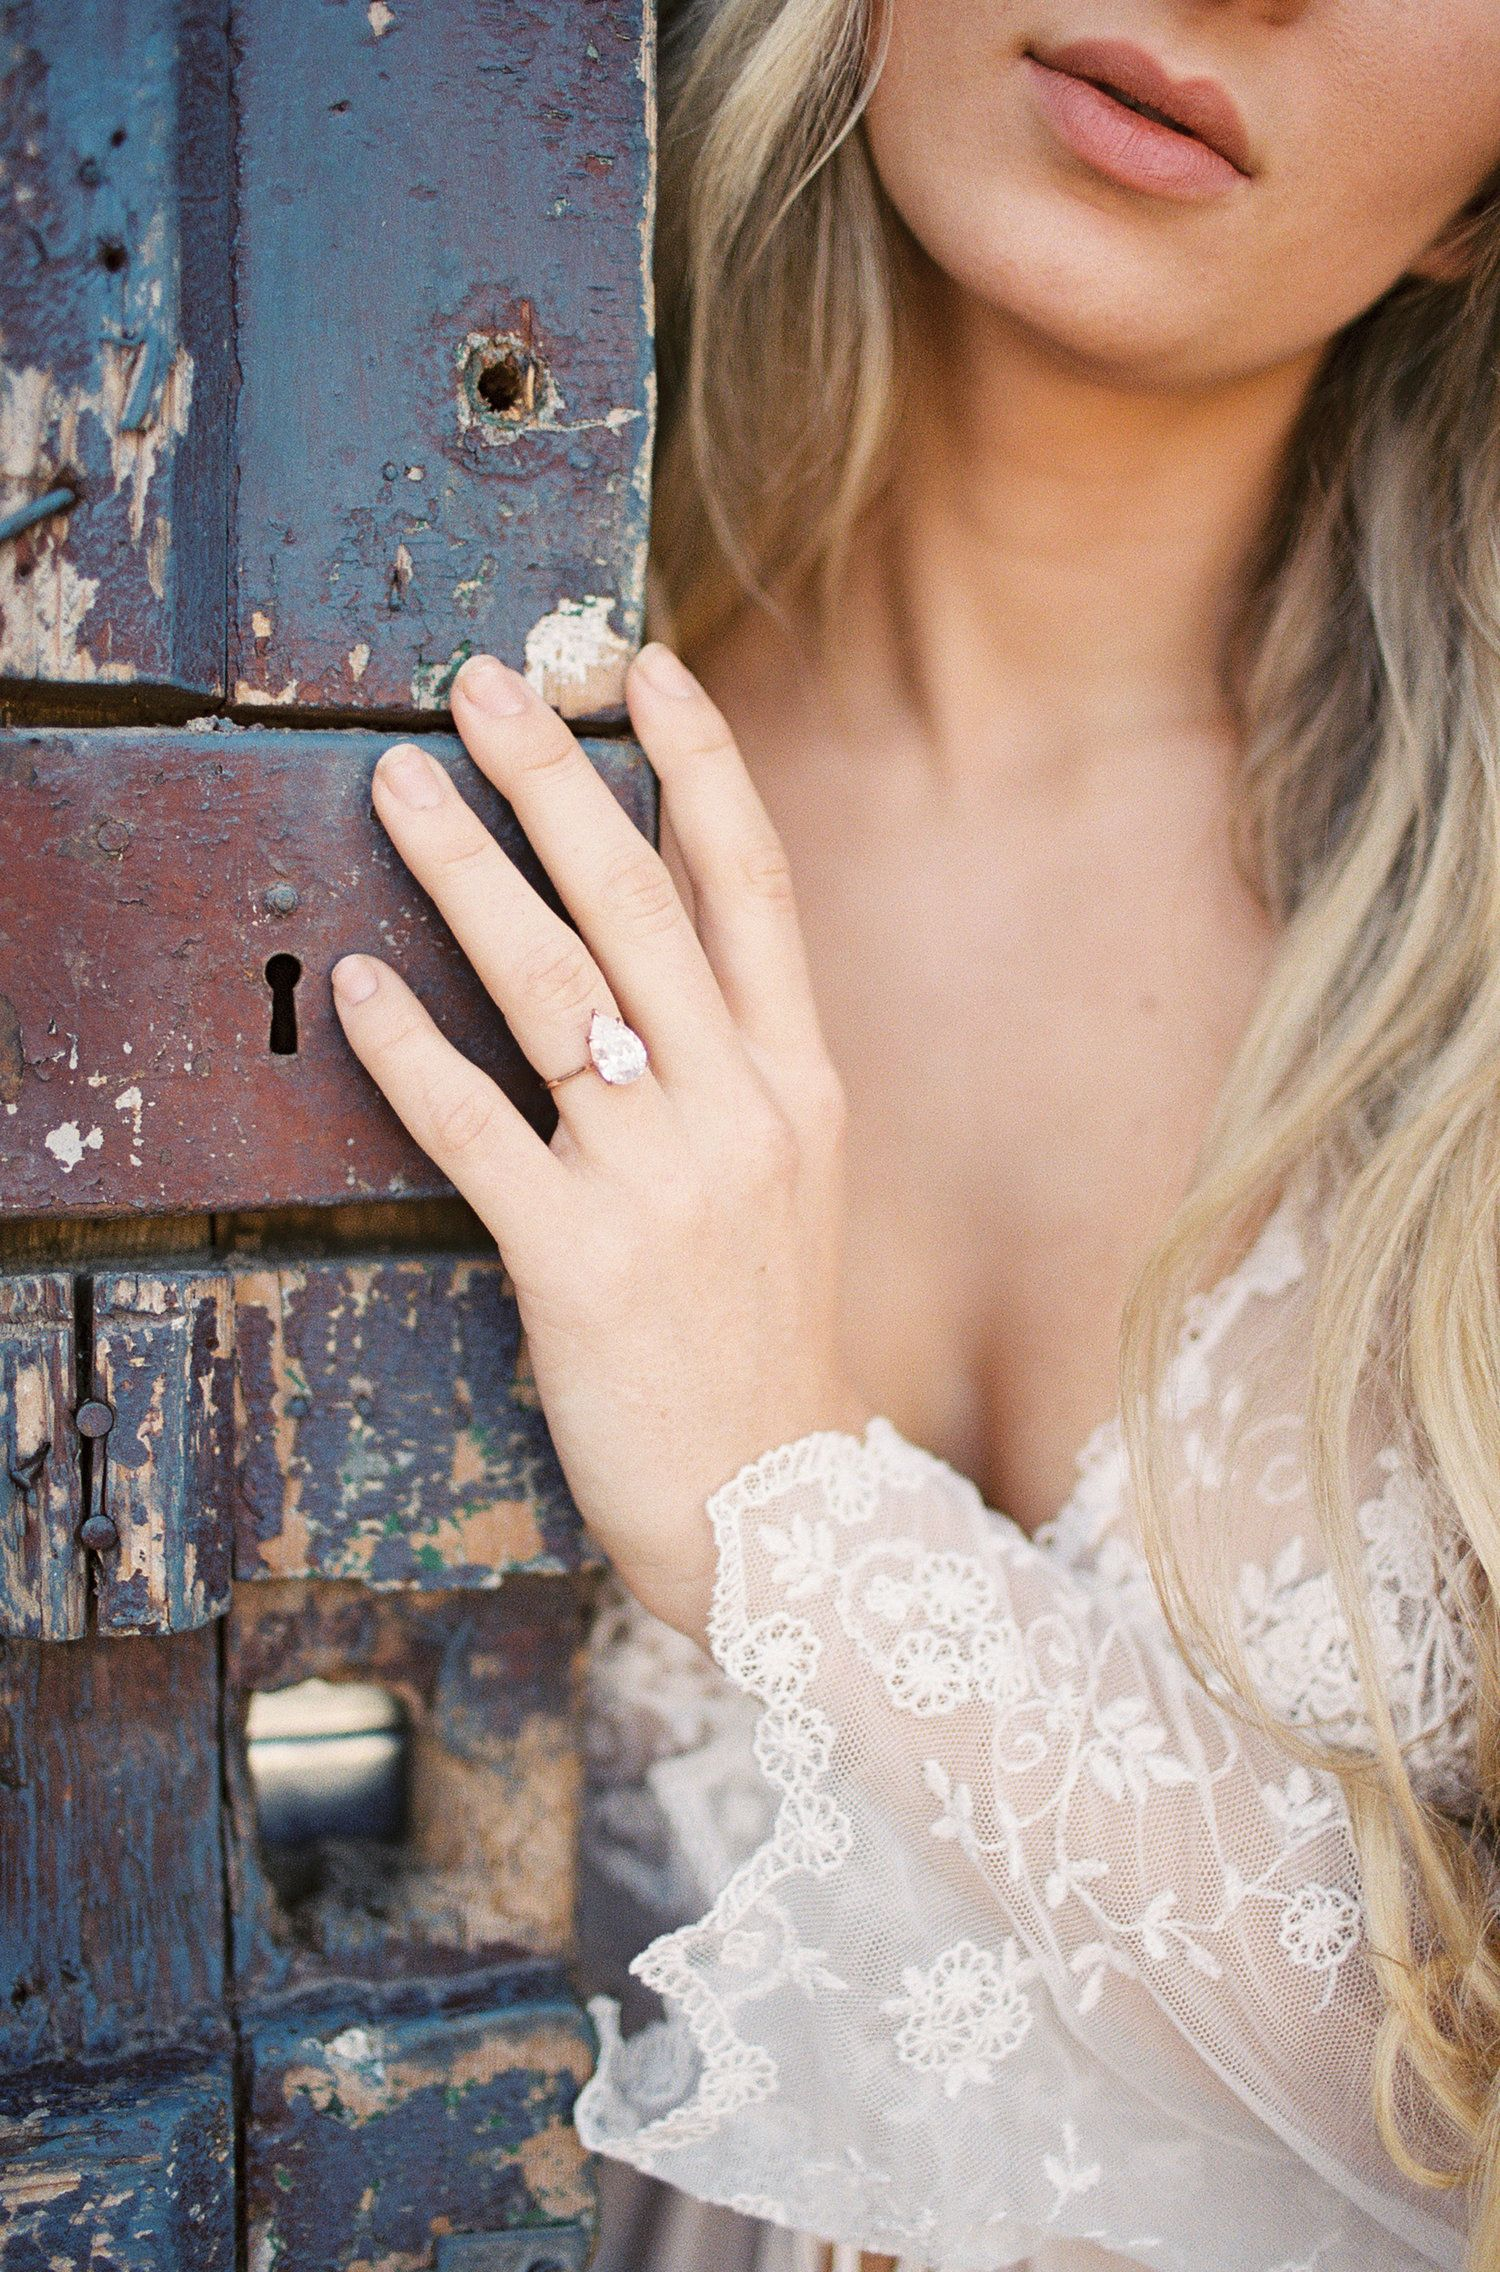 Pin on Sophisticated Bridal Boudoir Editorial